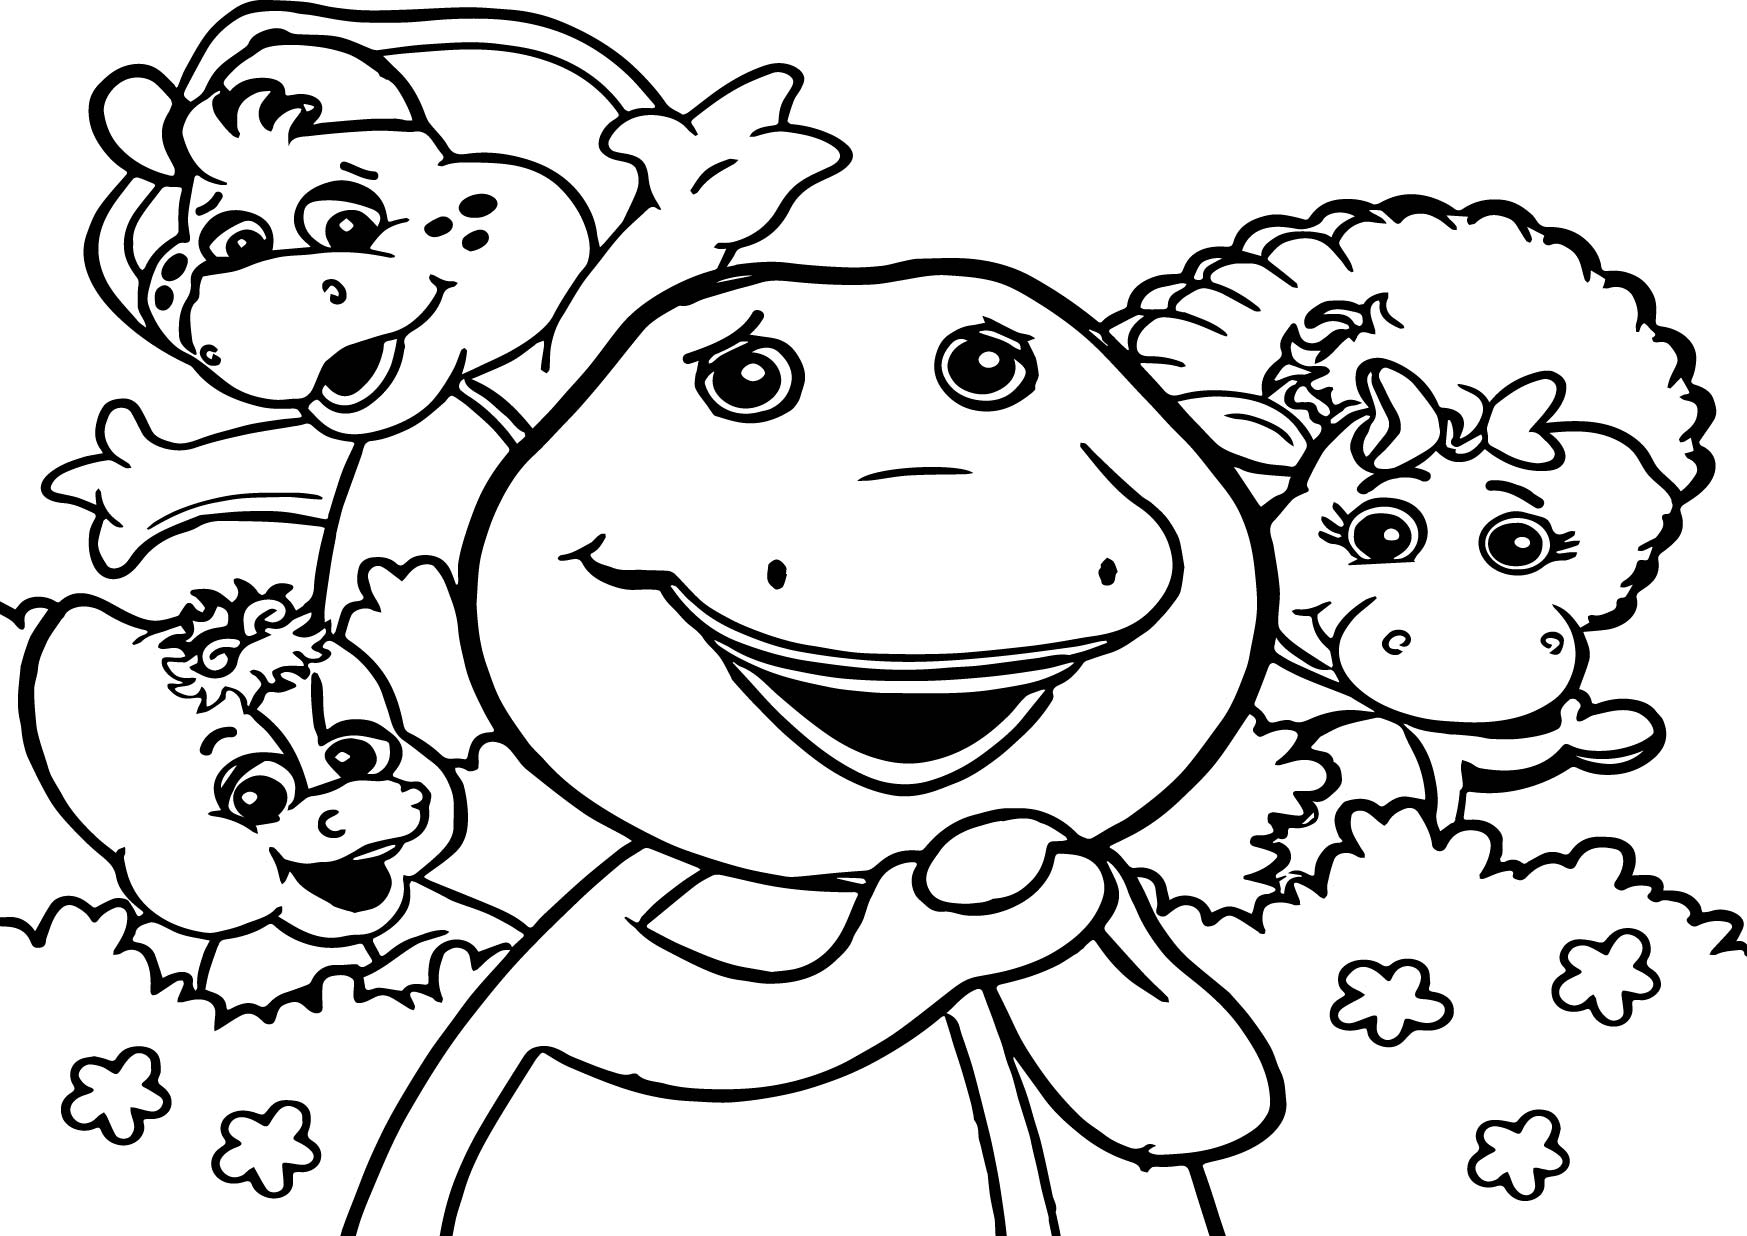 Uncategorized Barney Color Pages barney friends coloring page wecoloringpage page